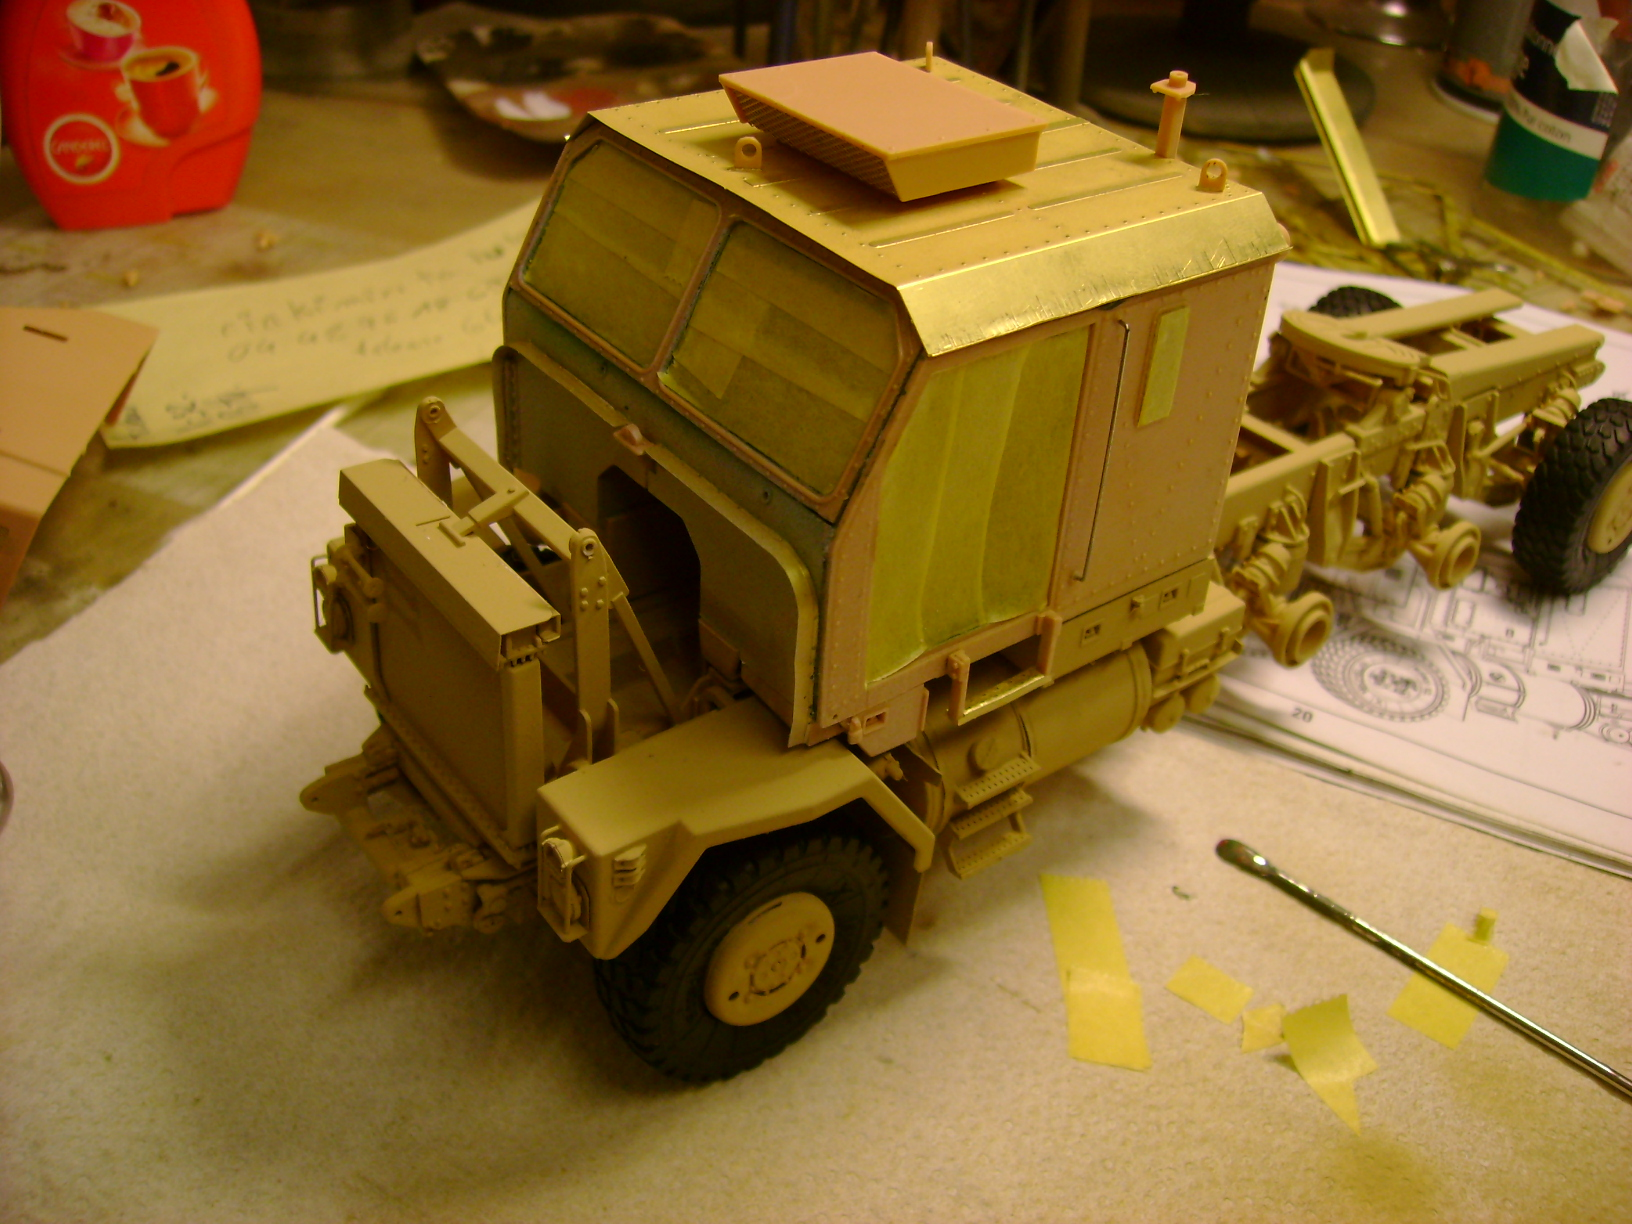 M1070 Truck Tractor & M1000 Semi-Trailer By T-bird!!!!! 1/35 Hobby Boss.Up du01/02.... - Page 4 109tw